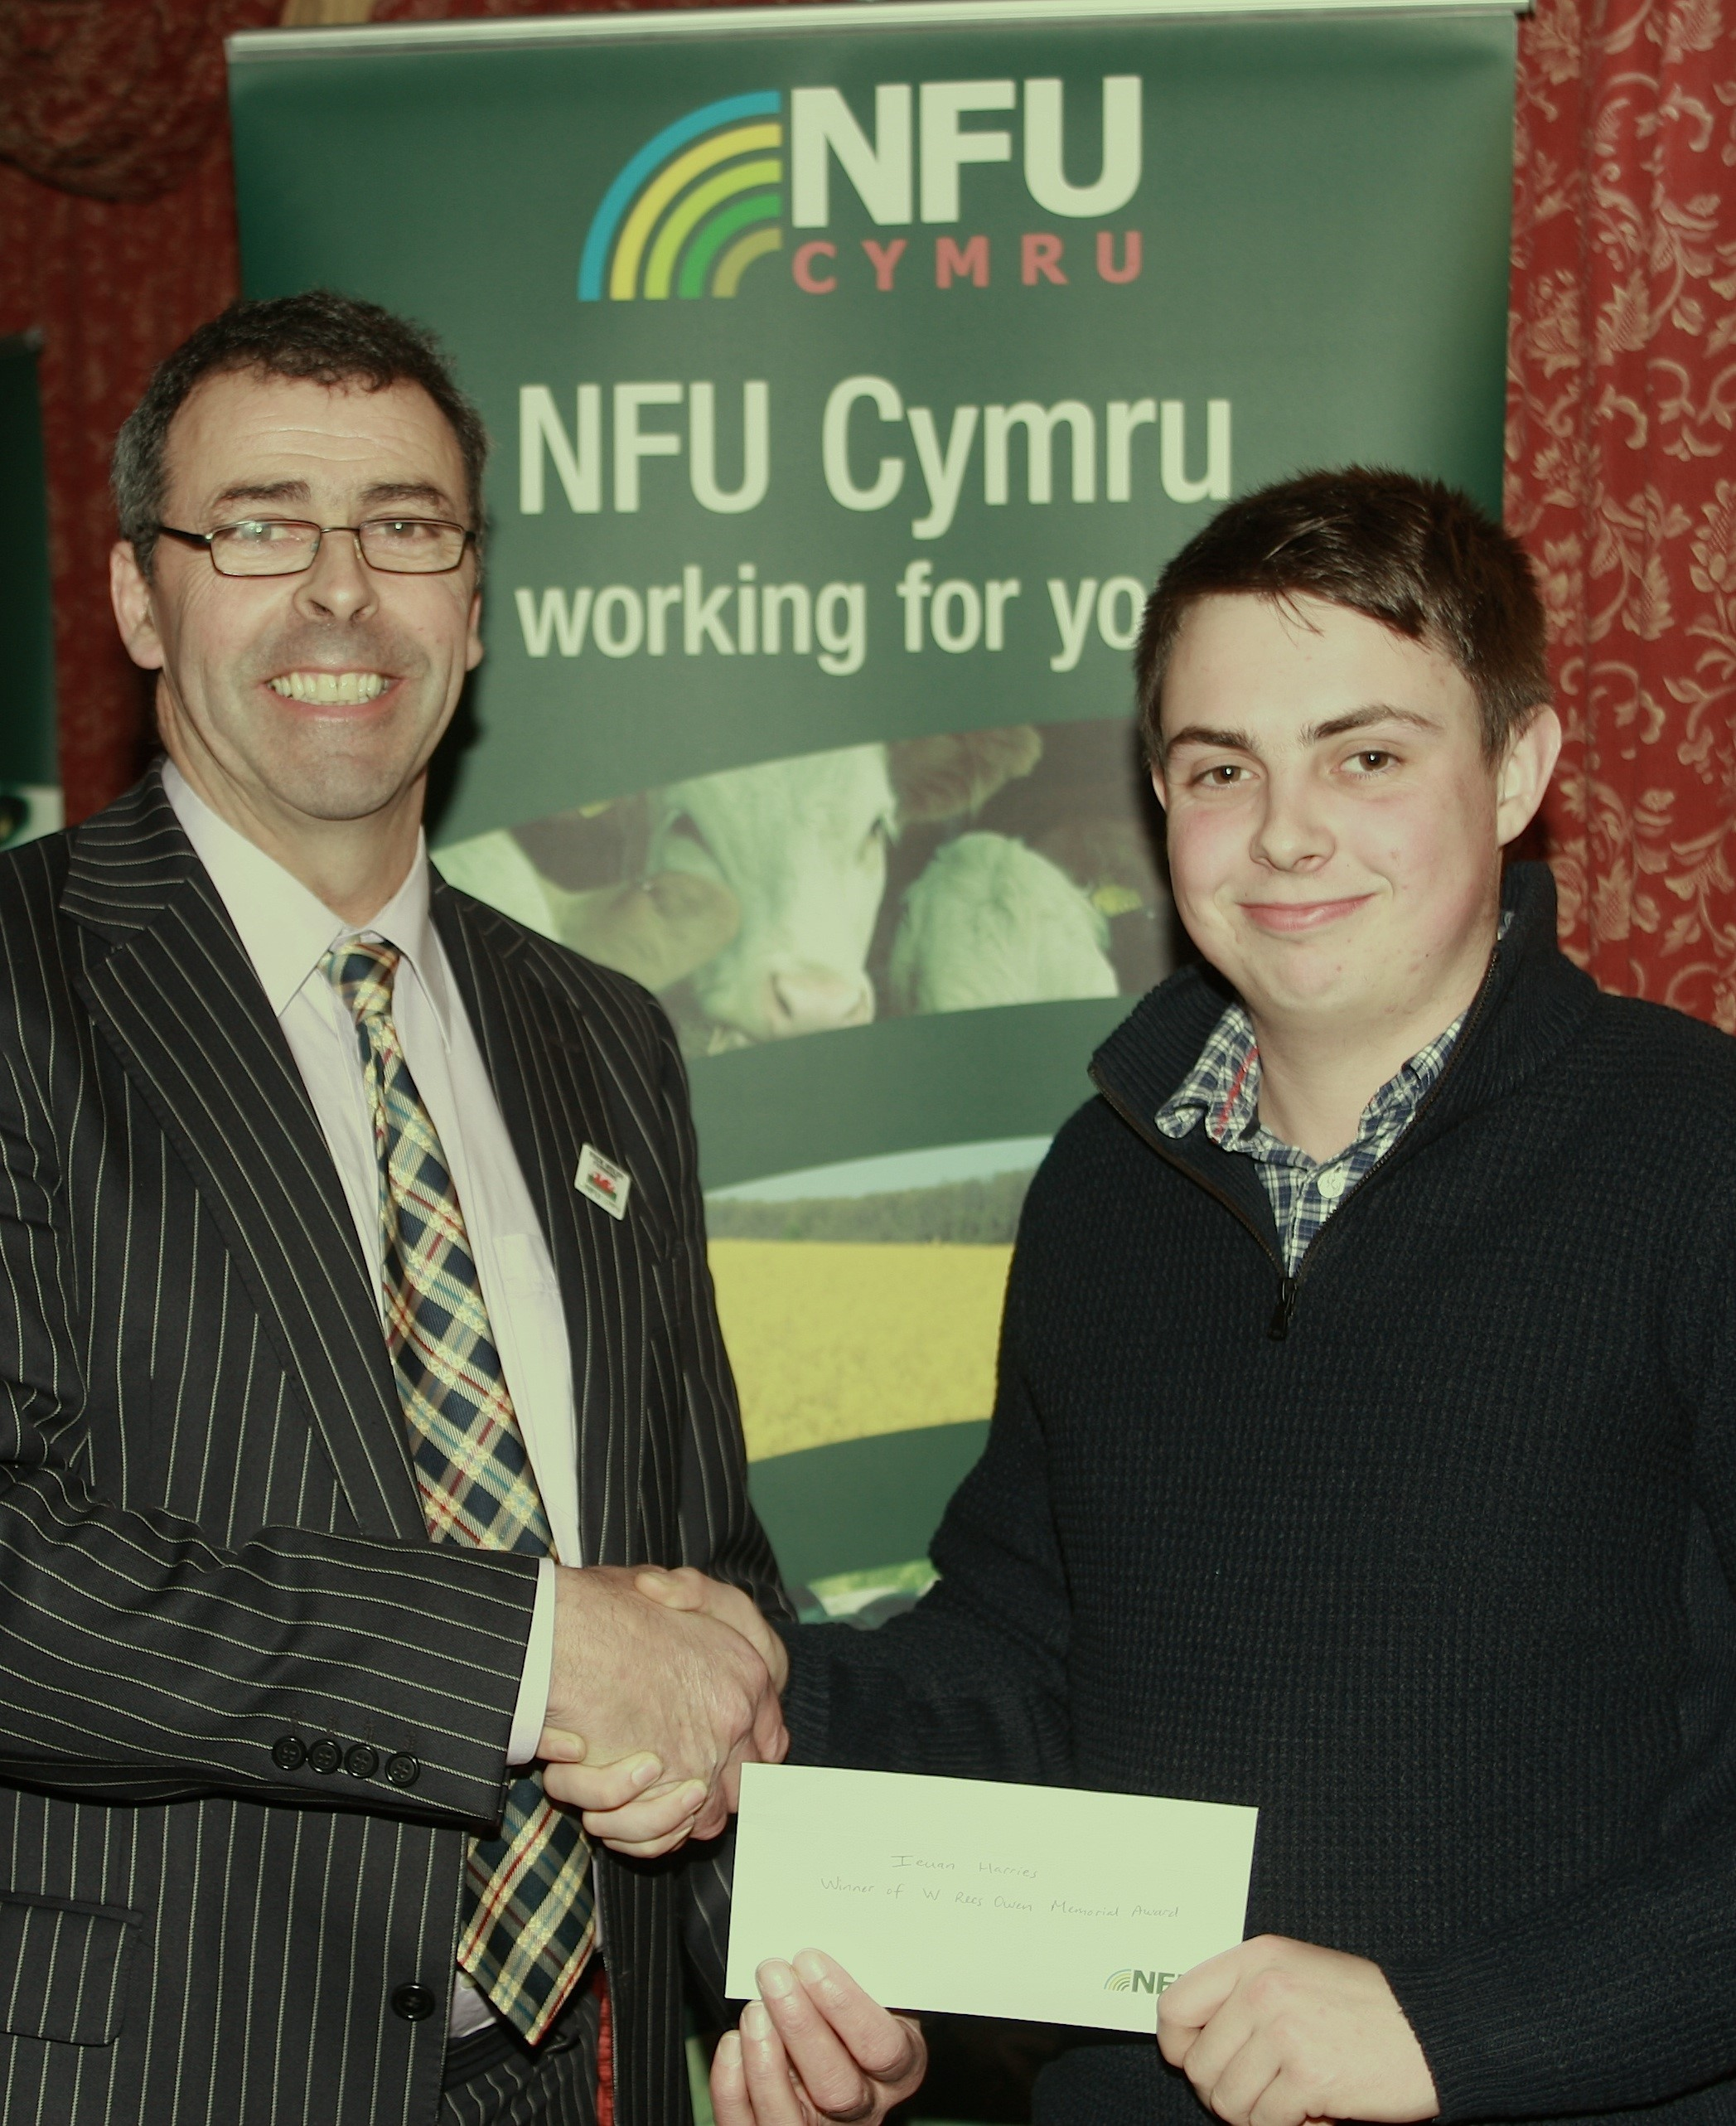 The W Rees Owen Memorial prize, presented each year by the county branch of the NFU to encourage agricultural students to achieve greater success, was awarded this year to Ieuan Harries, 21, of Cilauwen, Letterston. The elder son of Paul and Angharad Harr